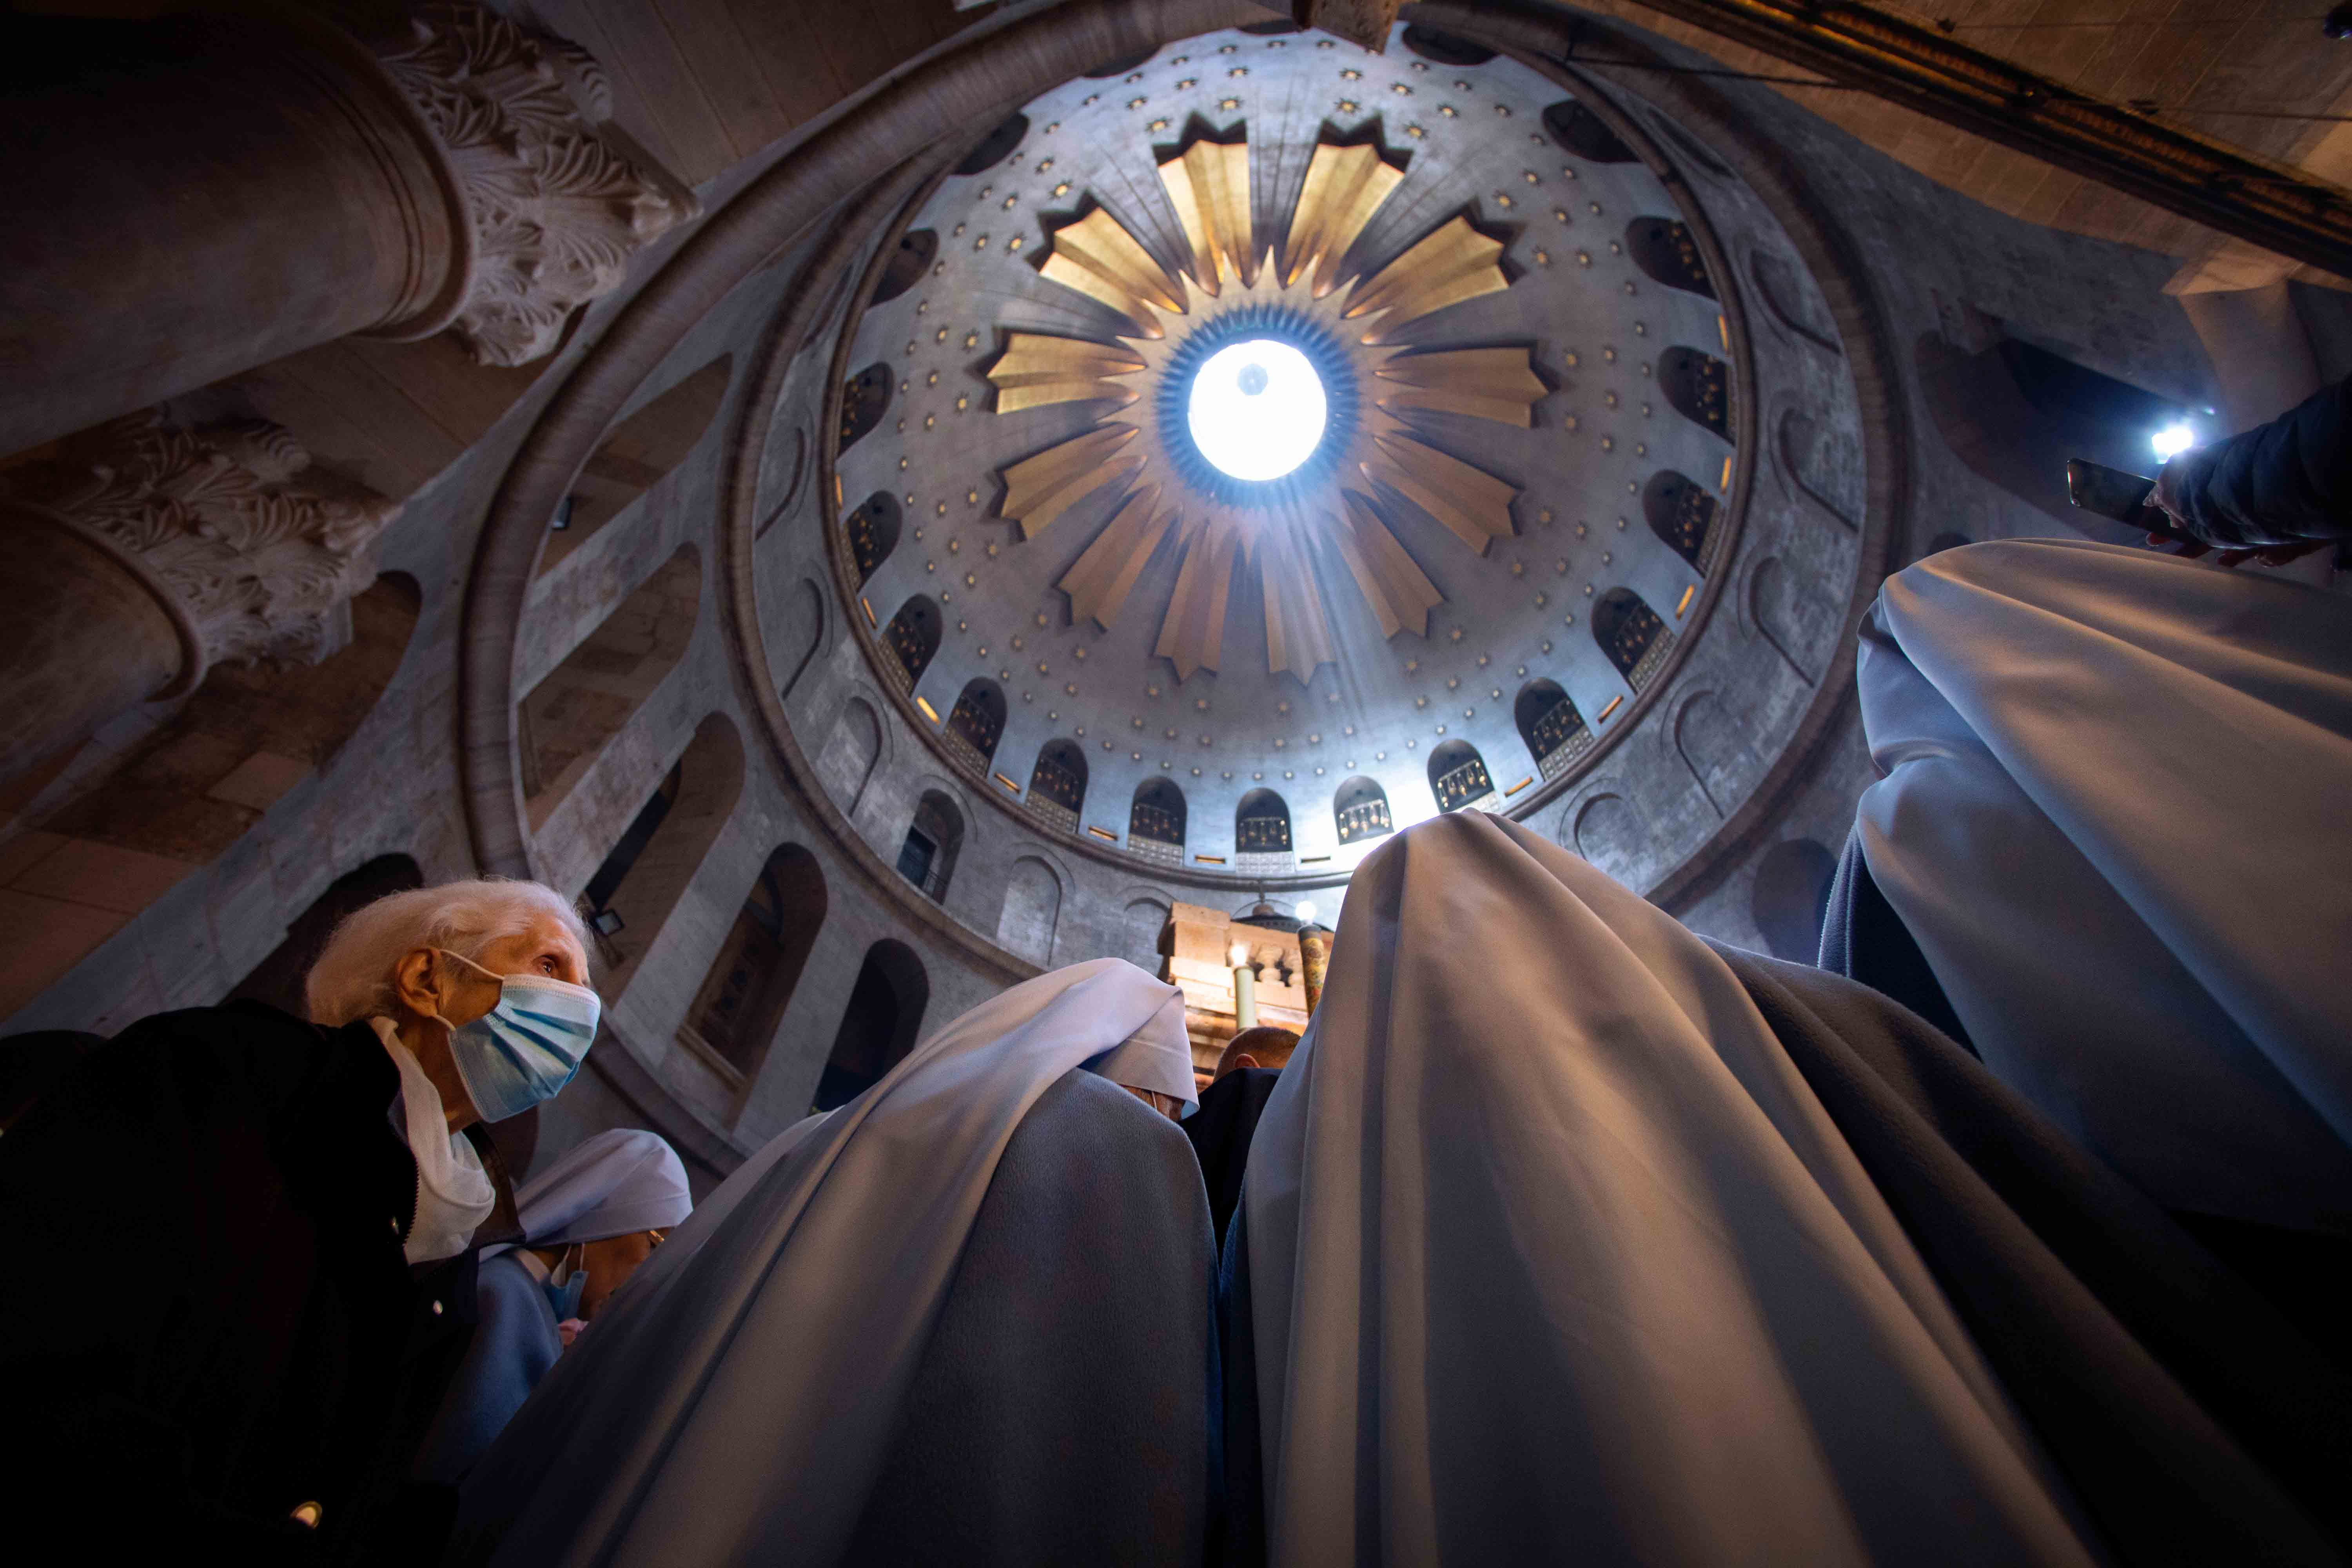 A woman wearing a face mask attends Easter Sunday Mass led by Latin Patriarch of Jerusalem Pierbattista Pizzaballa at the Church of the Holy Sepulchre,  in the Old City of Jerusalem, Sunday, April 4, 2021.